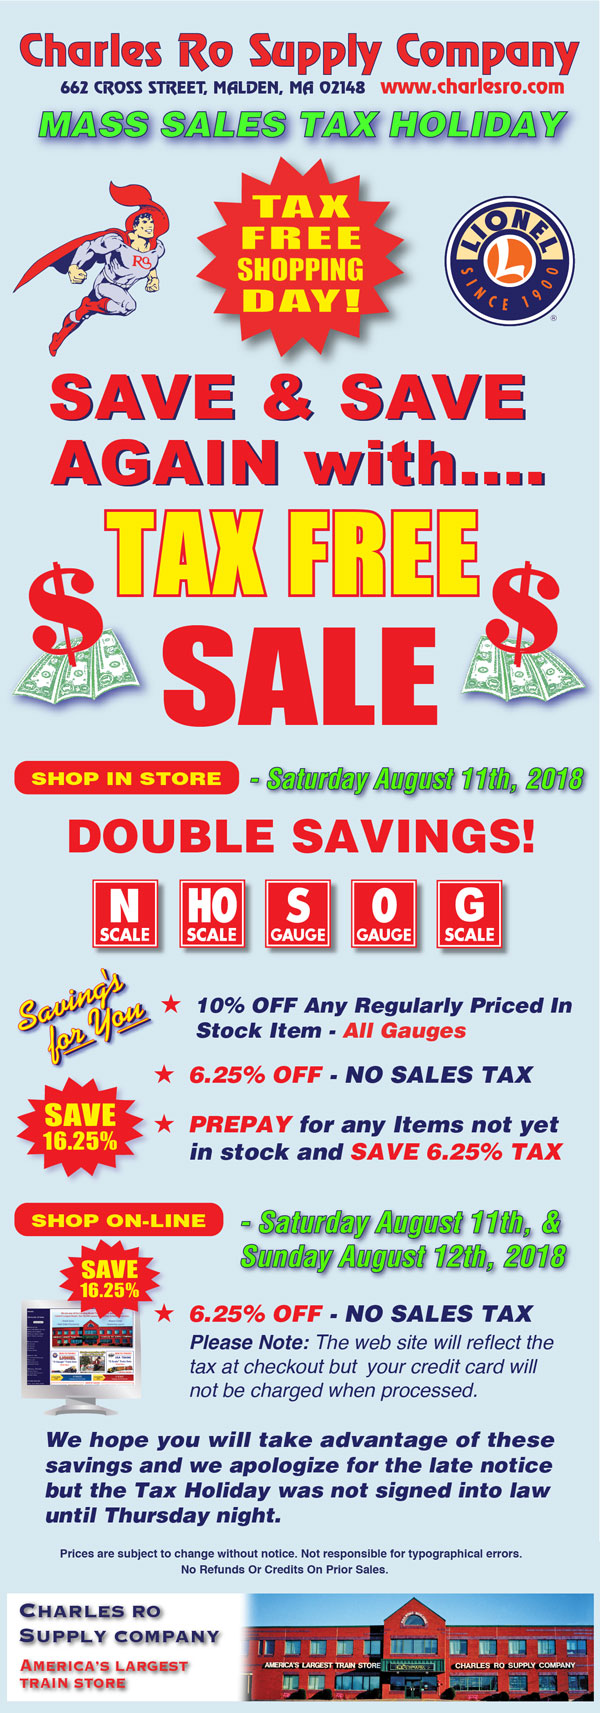 Ma Sales Tax On Cars >> Charles Ro Supply Company Mass Sales Tax Holiday O Gauge